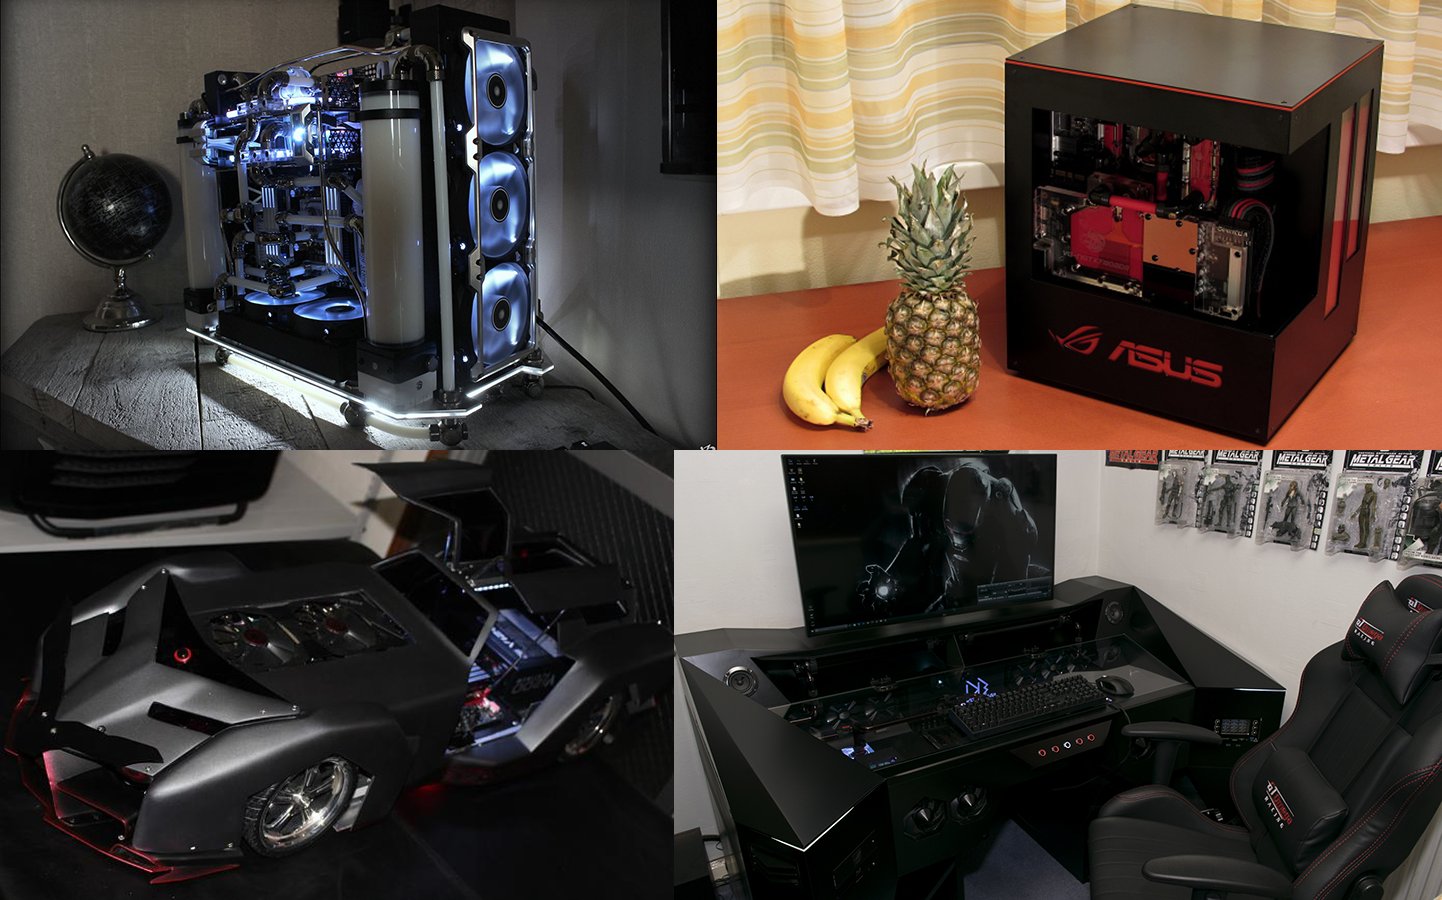 Express Yourself: How to Custom Mod Your PC | ROG - Republic of Gamers Global